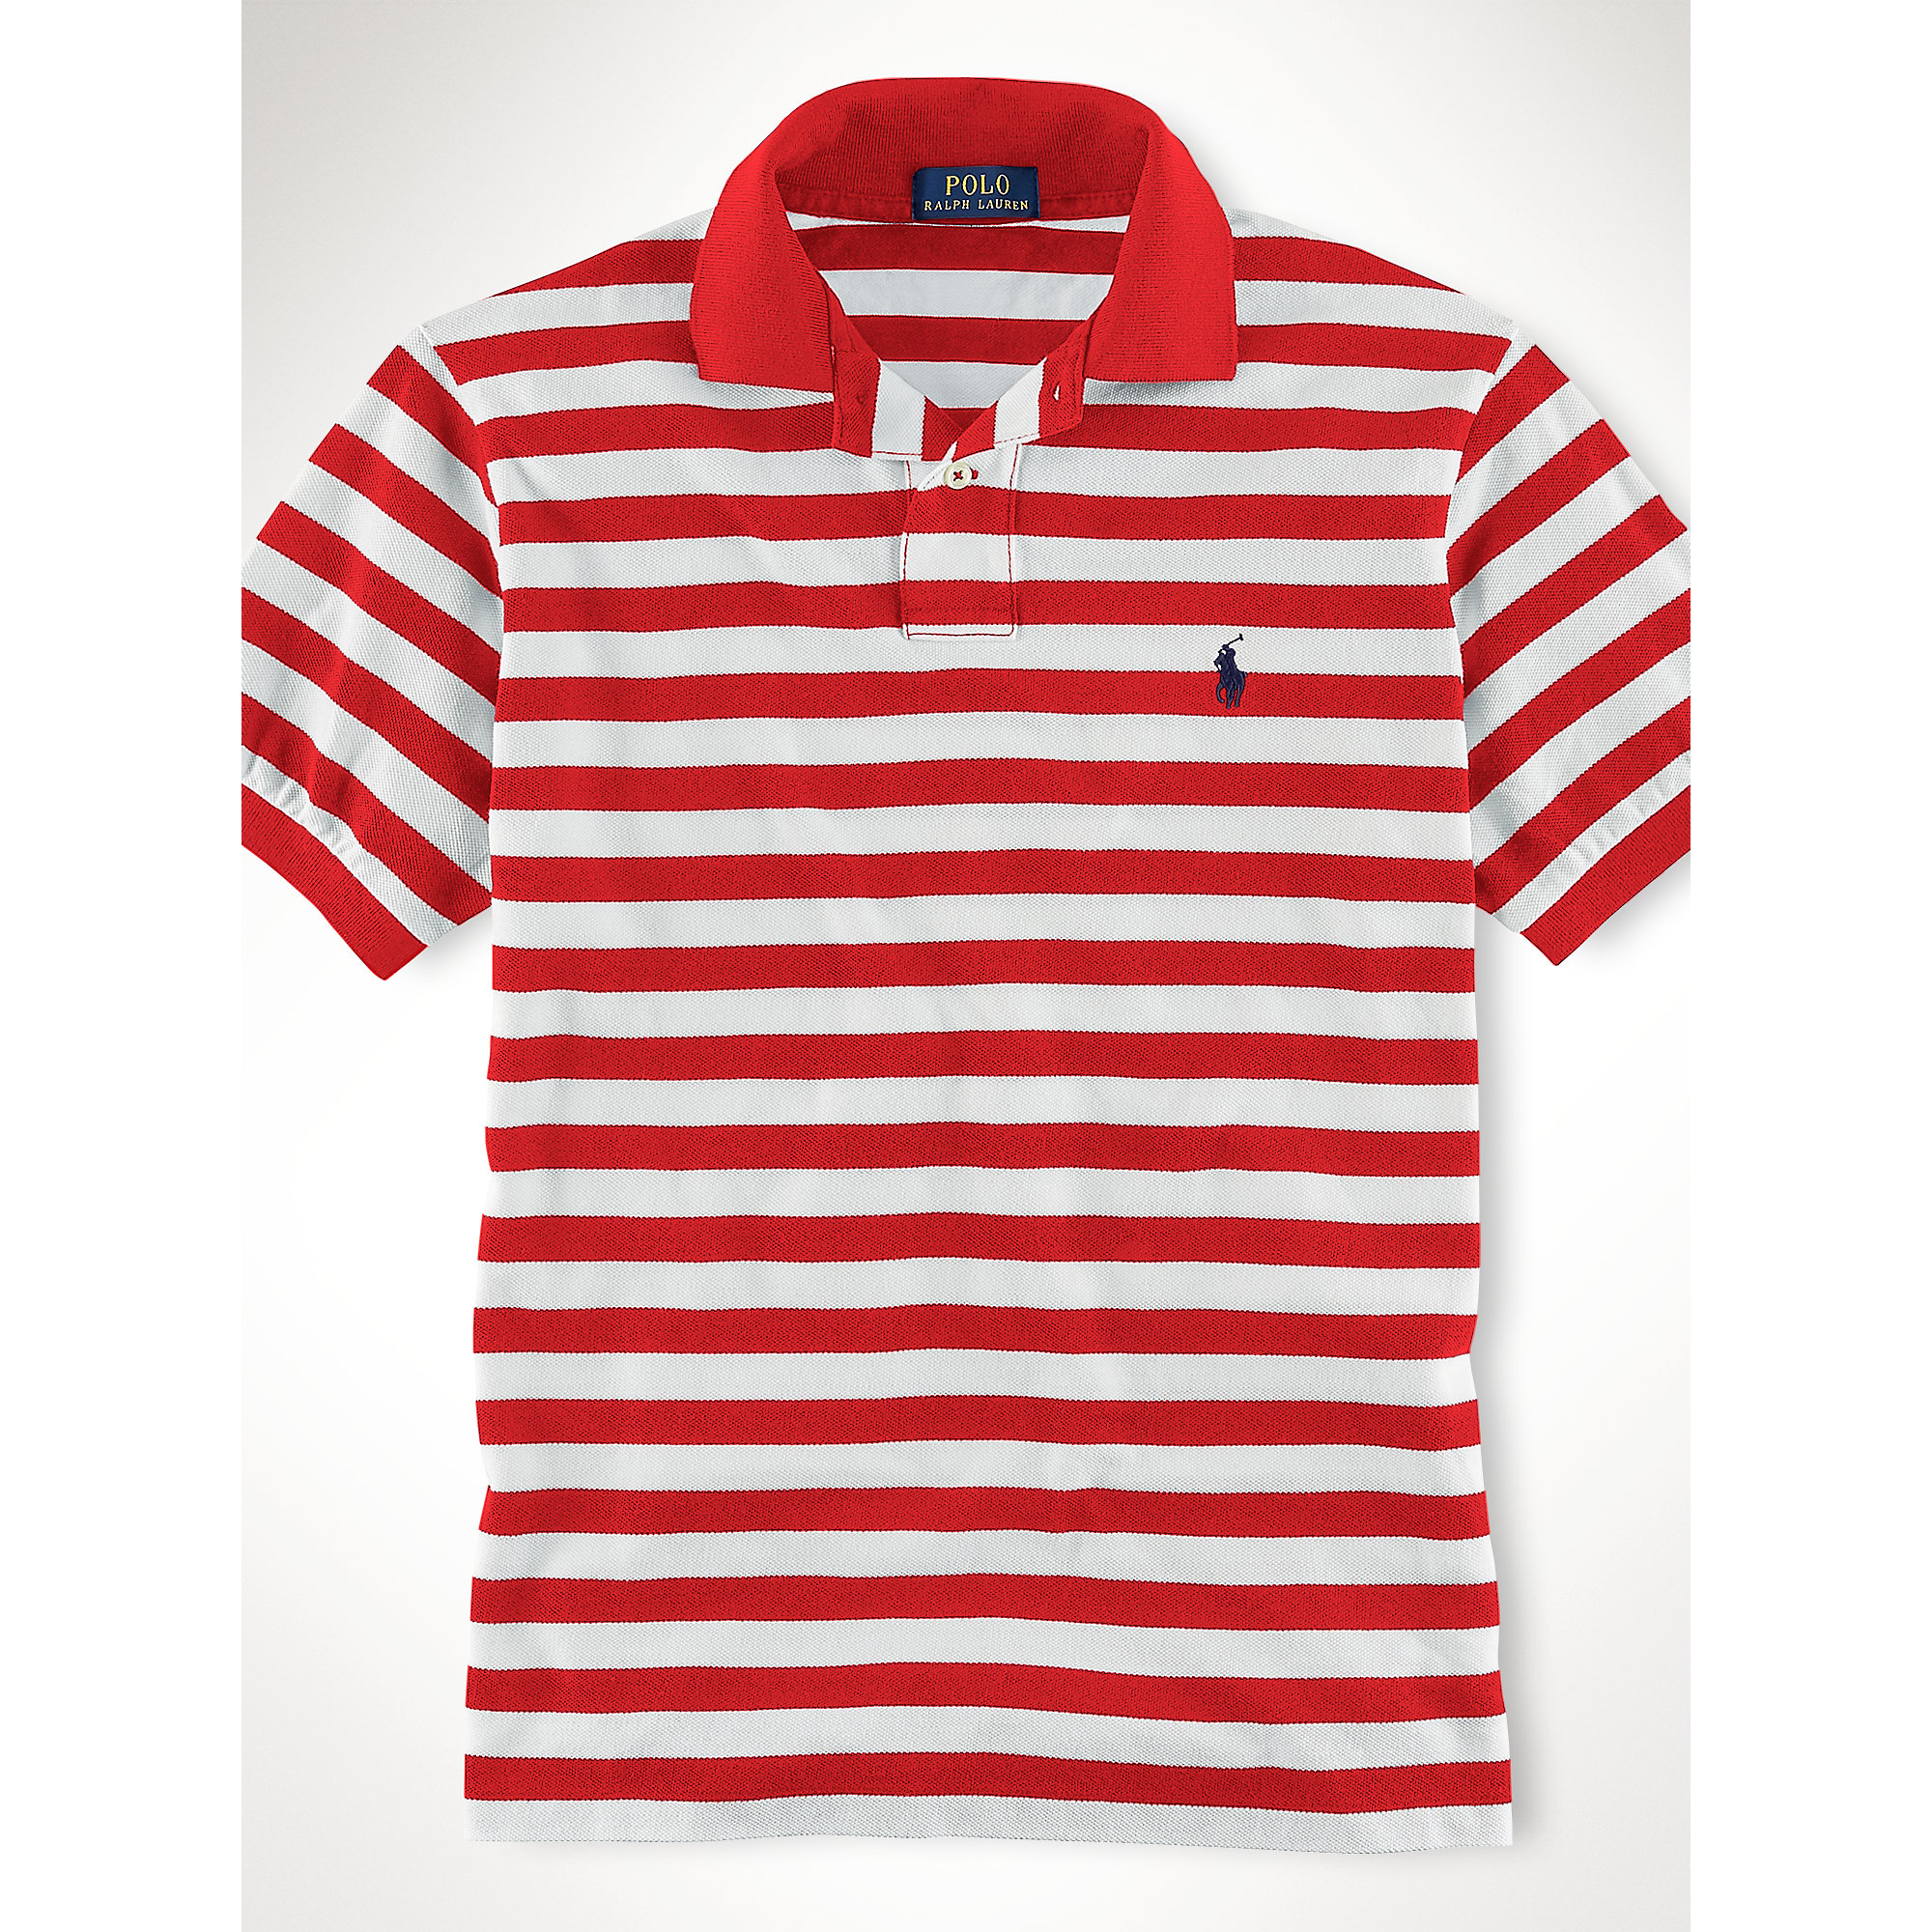 lyst polo ralph lauren custom fit striped polo shirt in ForRed White Striped Polo Shirt